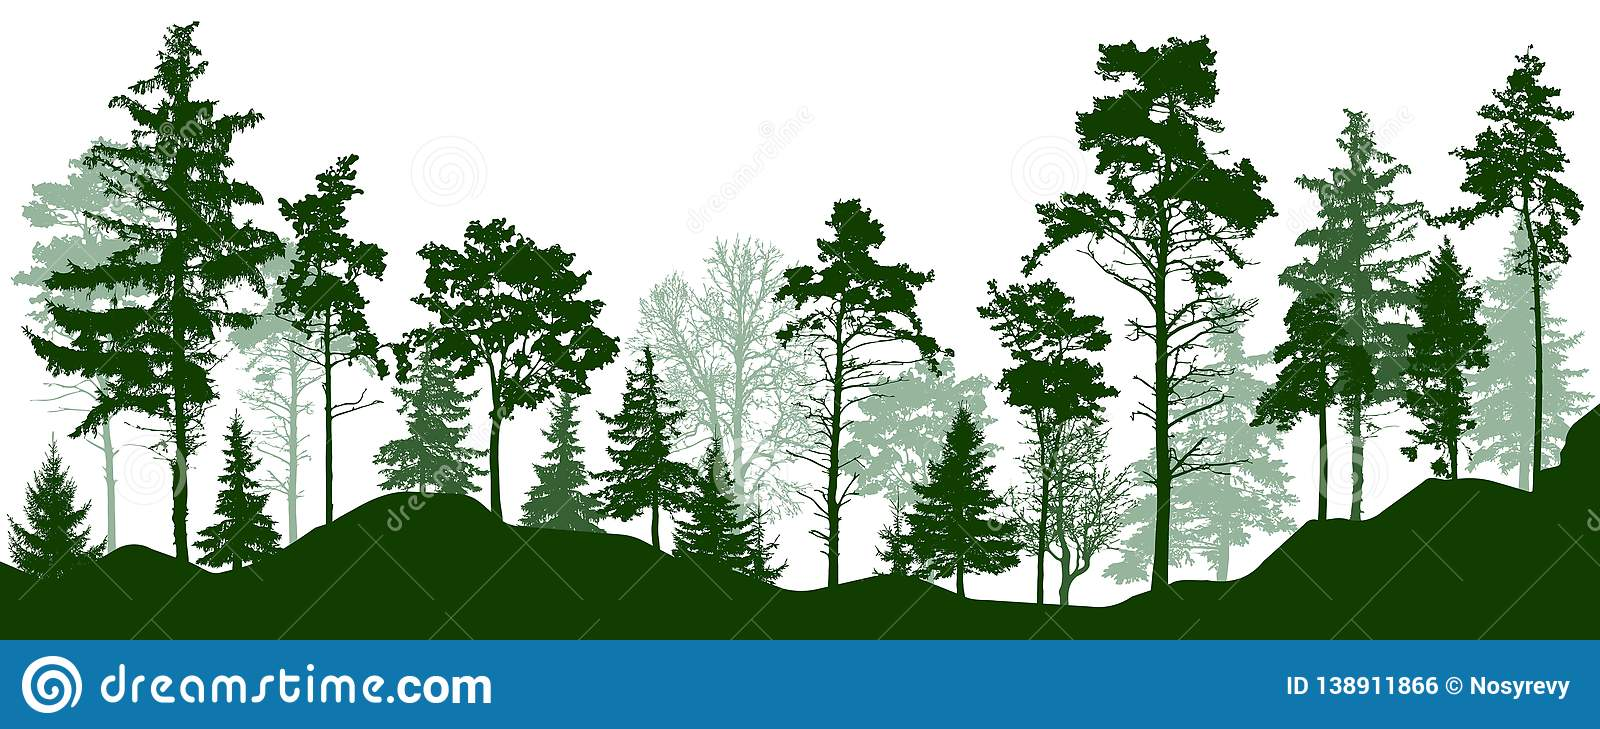 Forest silhouette green trees. Coniferous evergreen forest, park, alley. Vector illustration